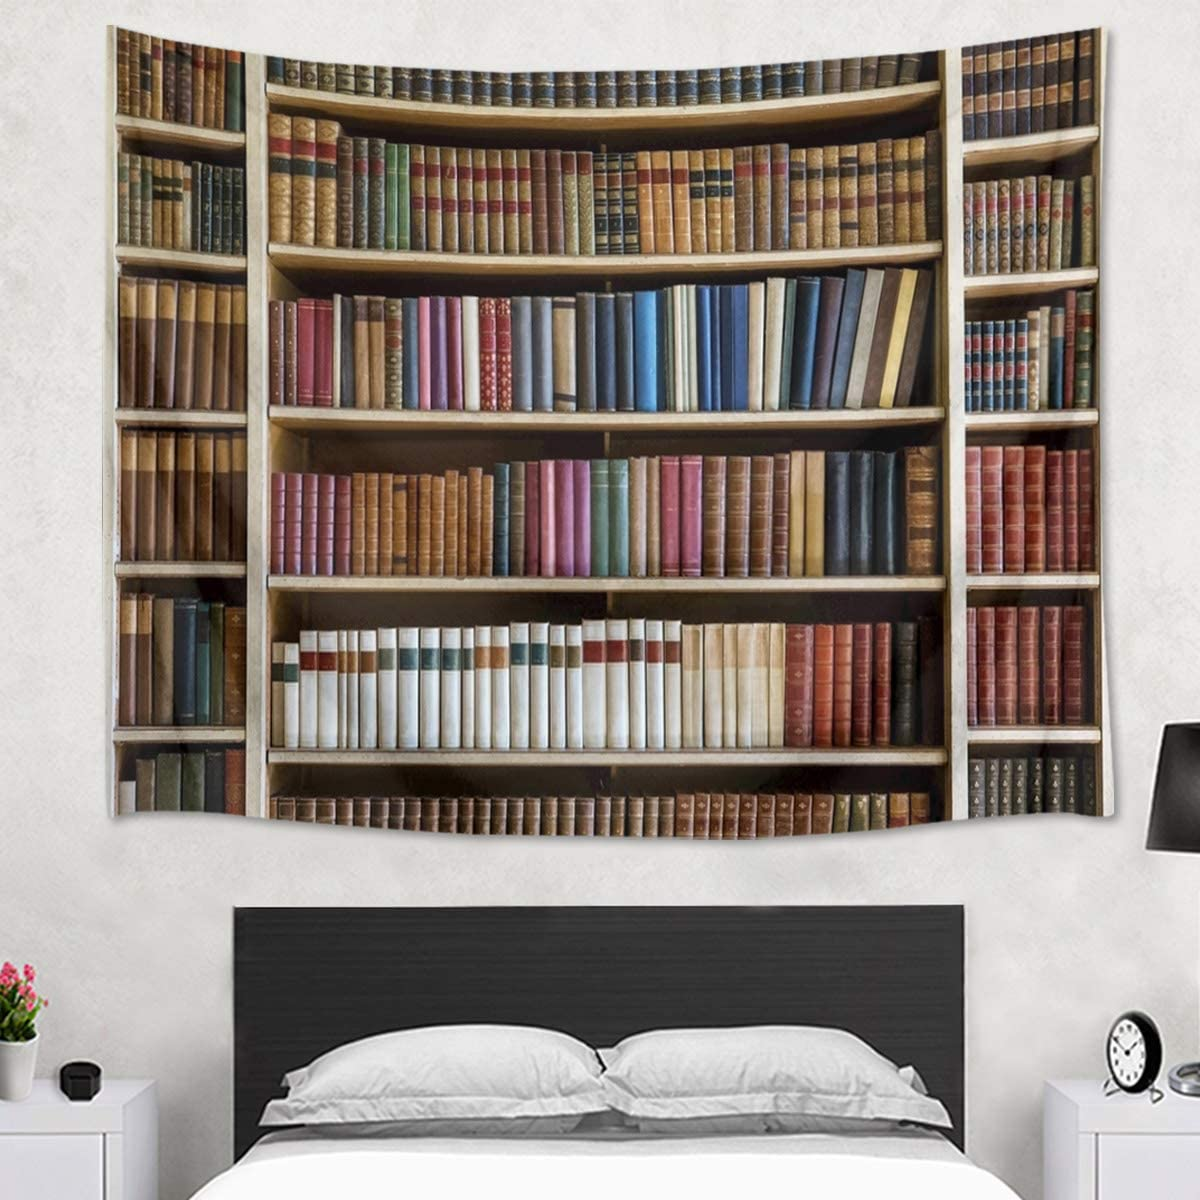 HVEST Library Tapestry Books on Wooden Shelf Wall Hanging Modern Bookshelf Tapestries for Bedroom Living Room Dorm Wall Decor,80Wx60H inches